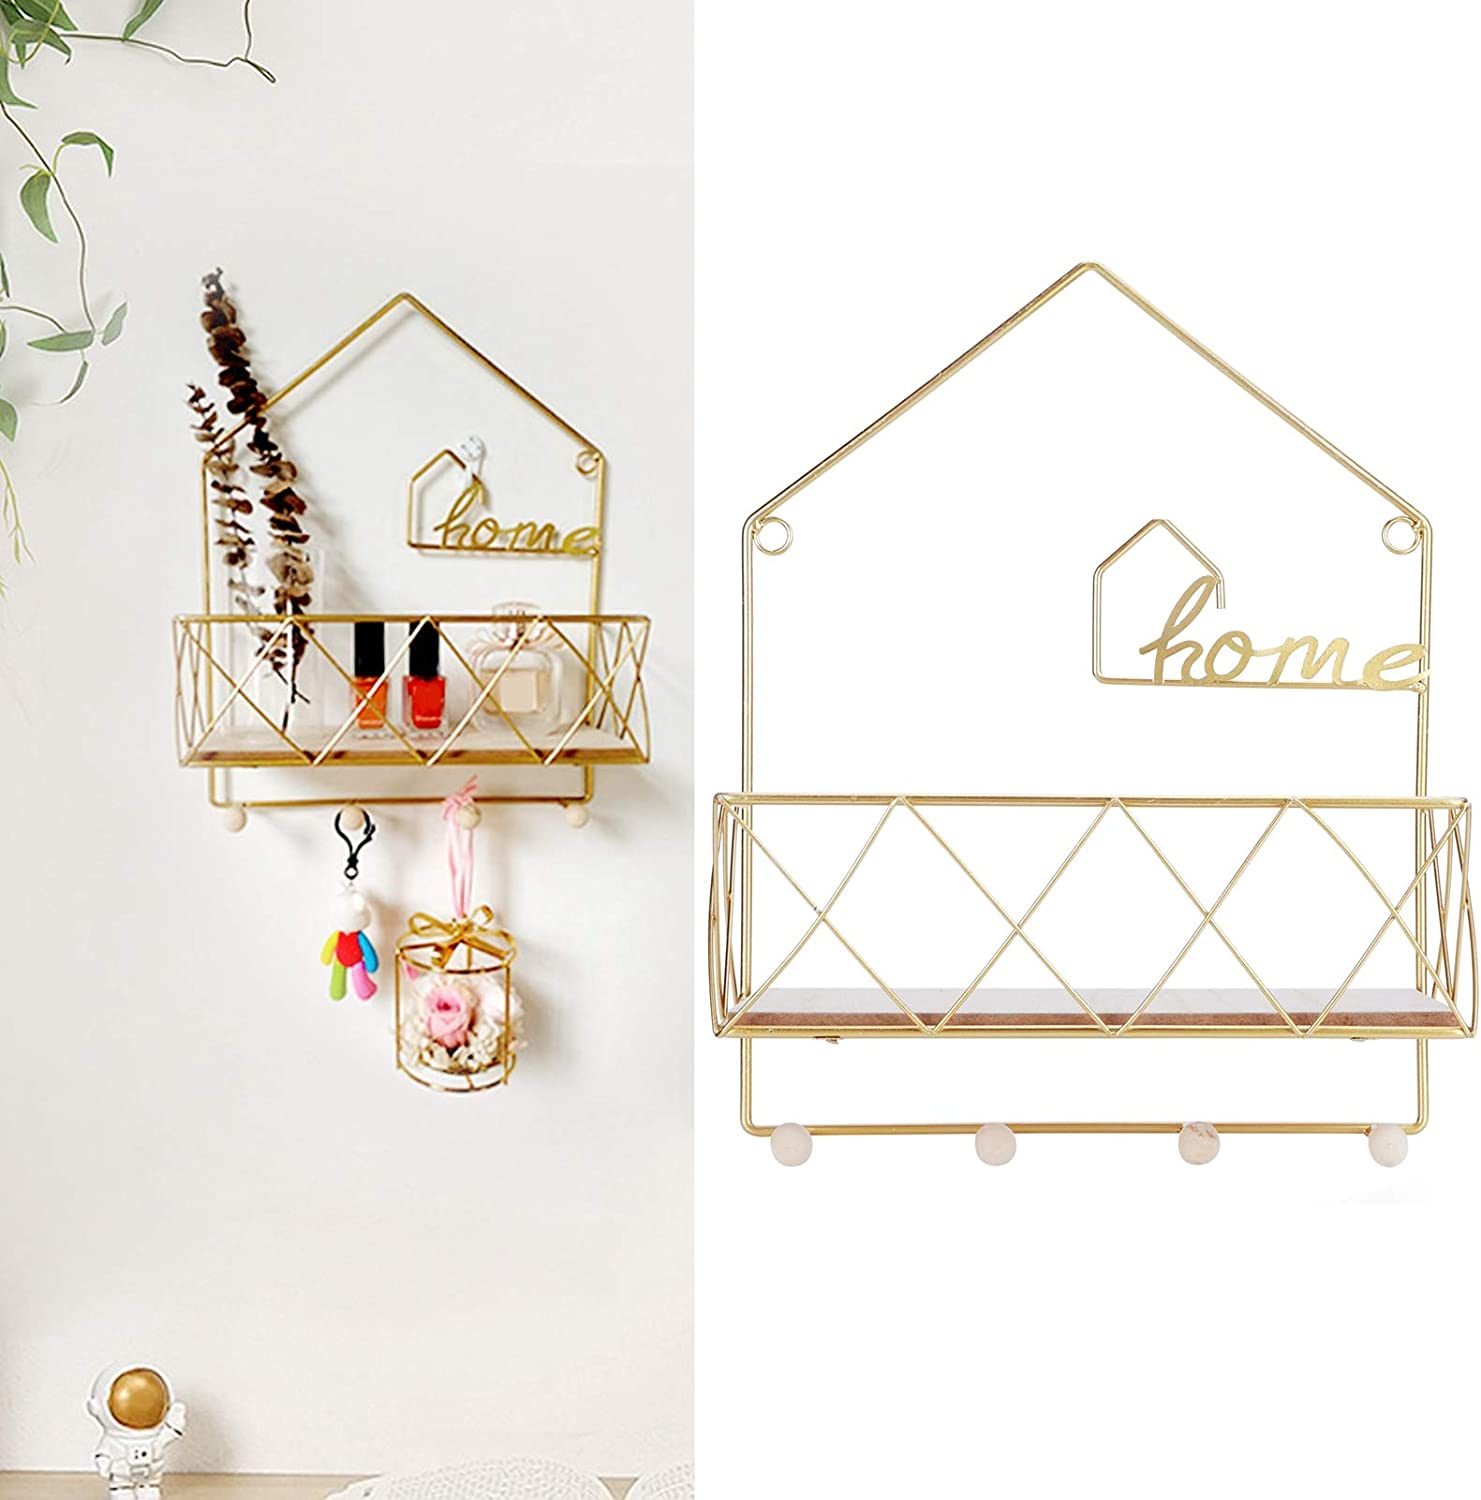 Popular FastUU Storage Rack Wrought Max 89% OFF Iron Din Punch‑Free Wall for